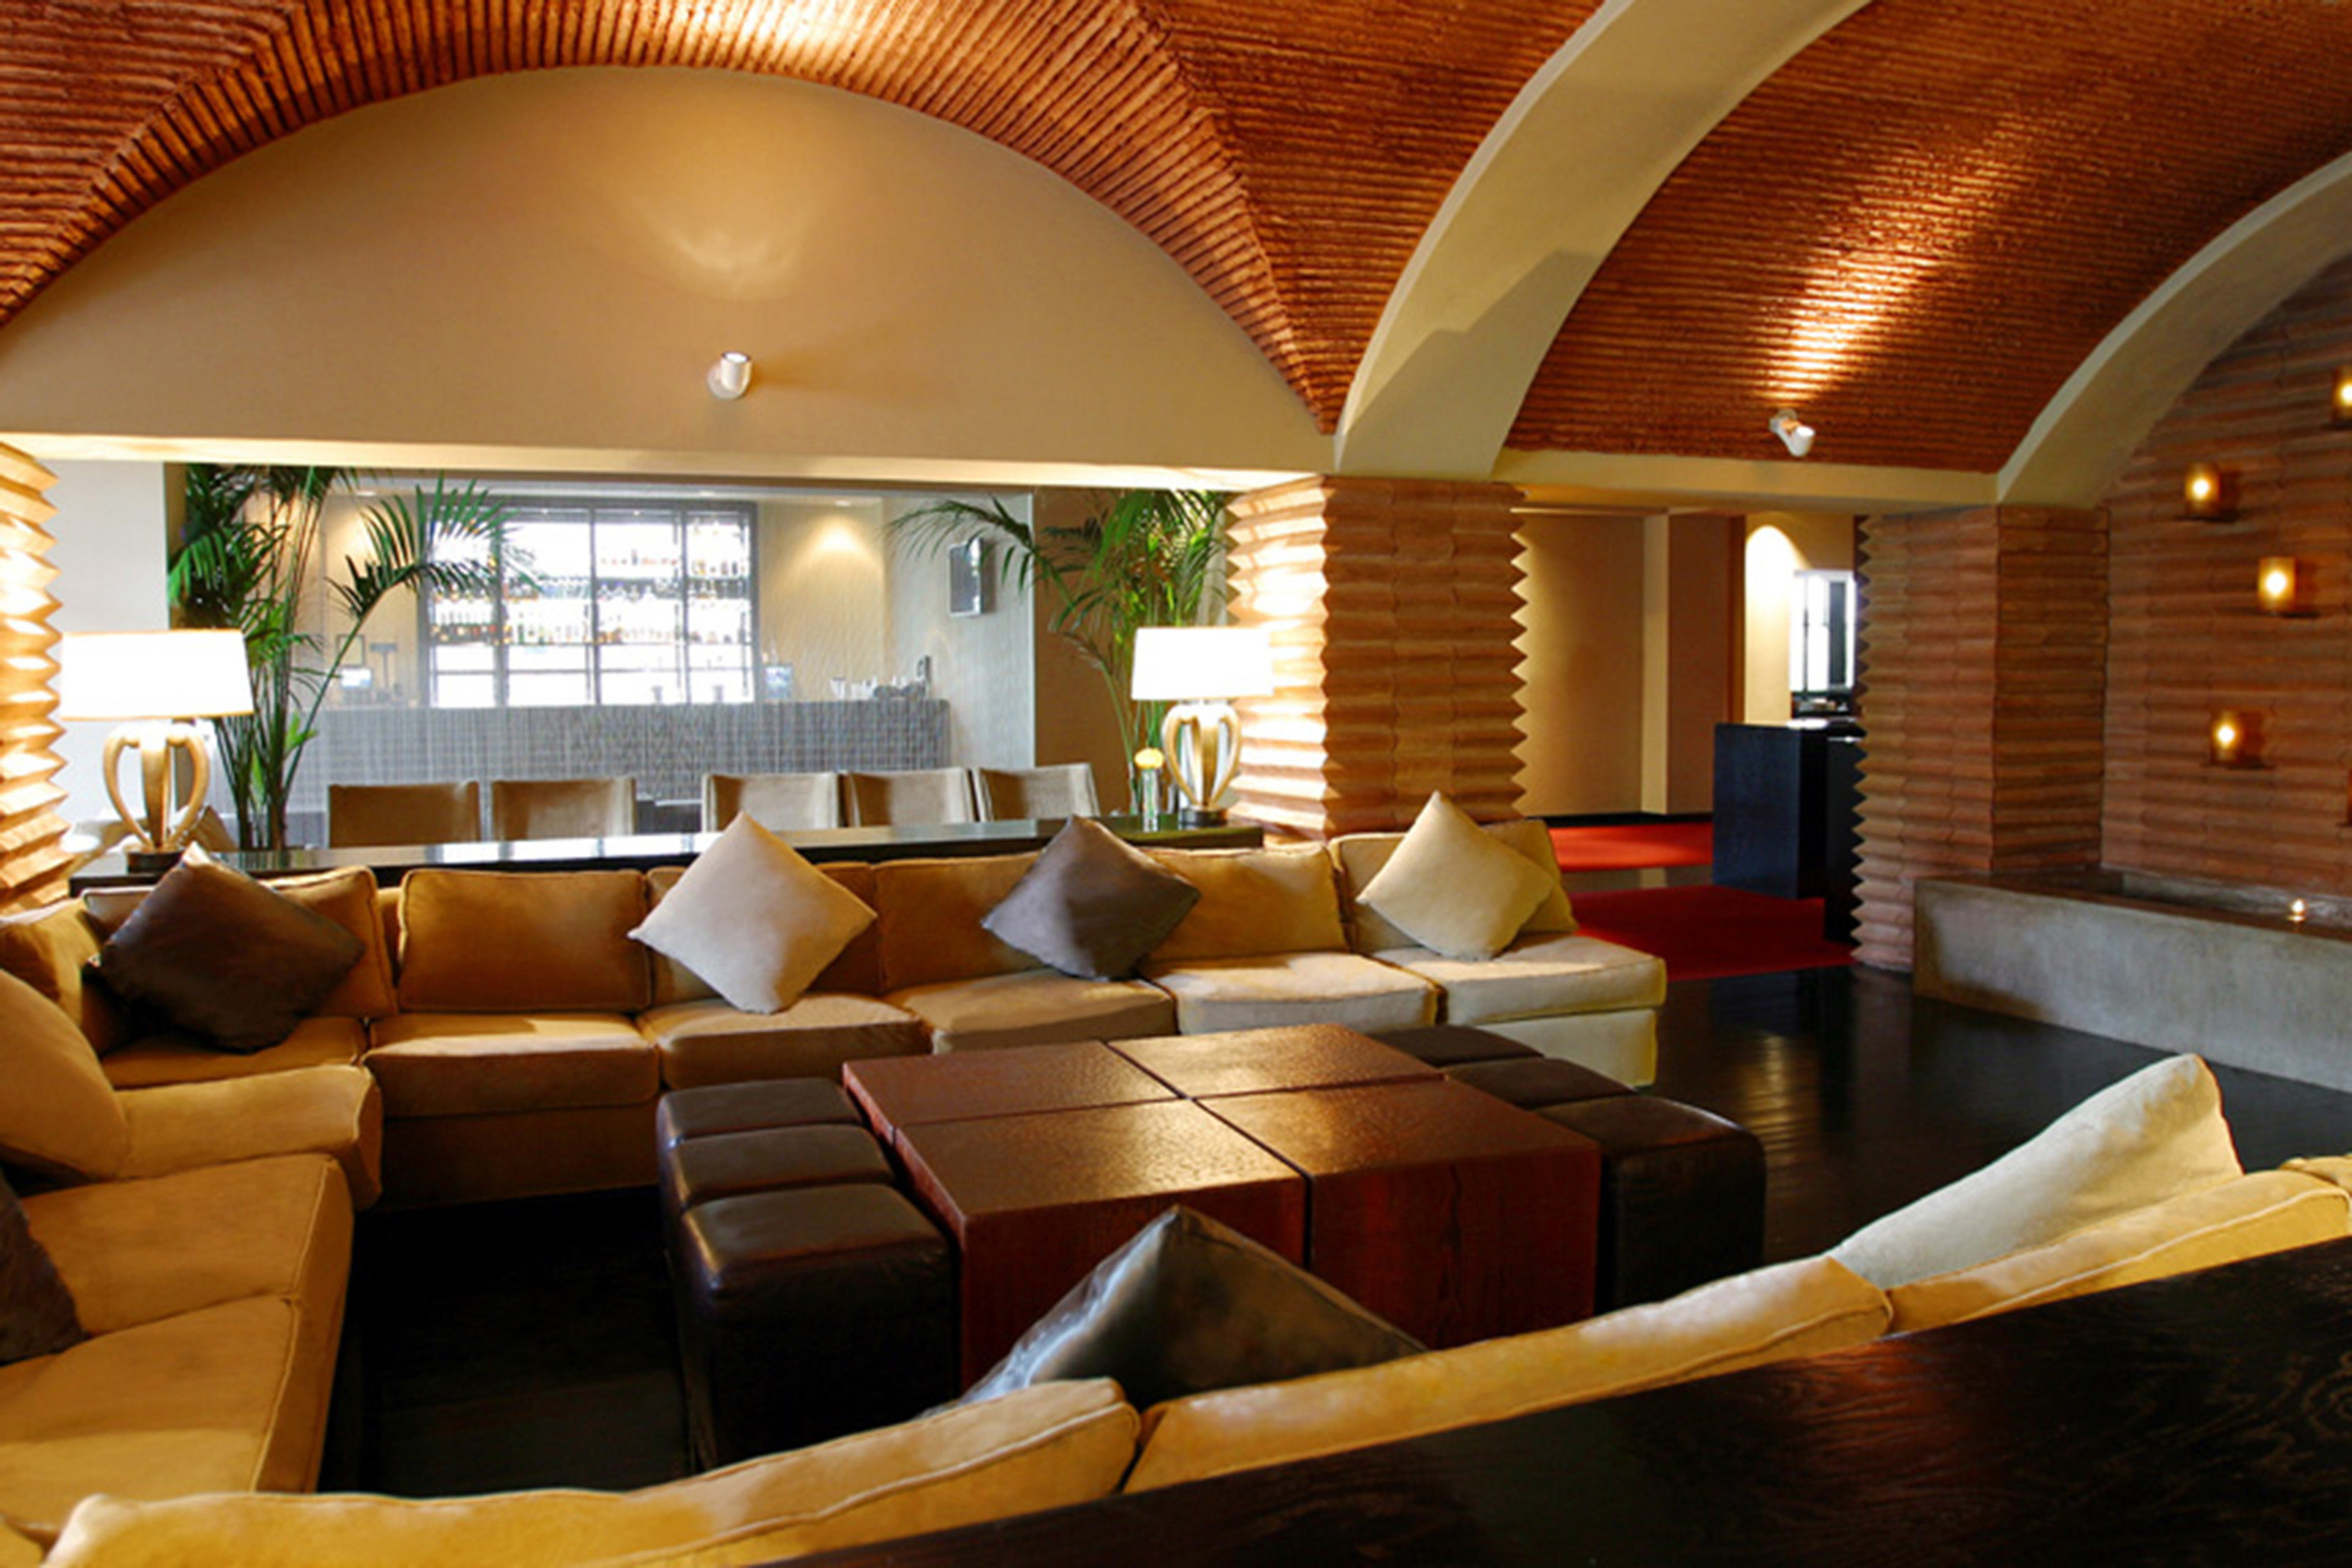 Lounge Modern sofa property Resort living room yacht Suite Lobby leather